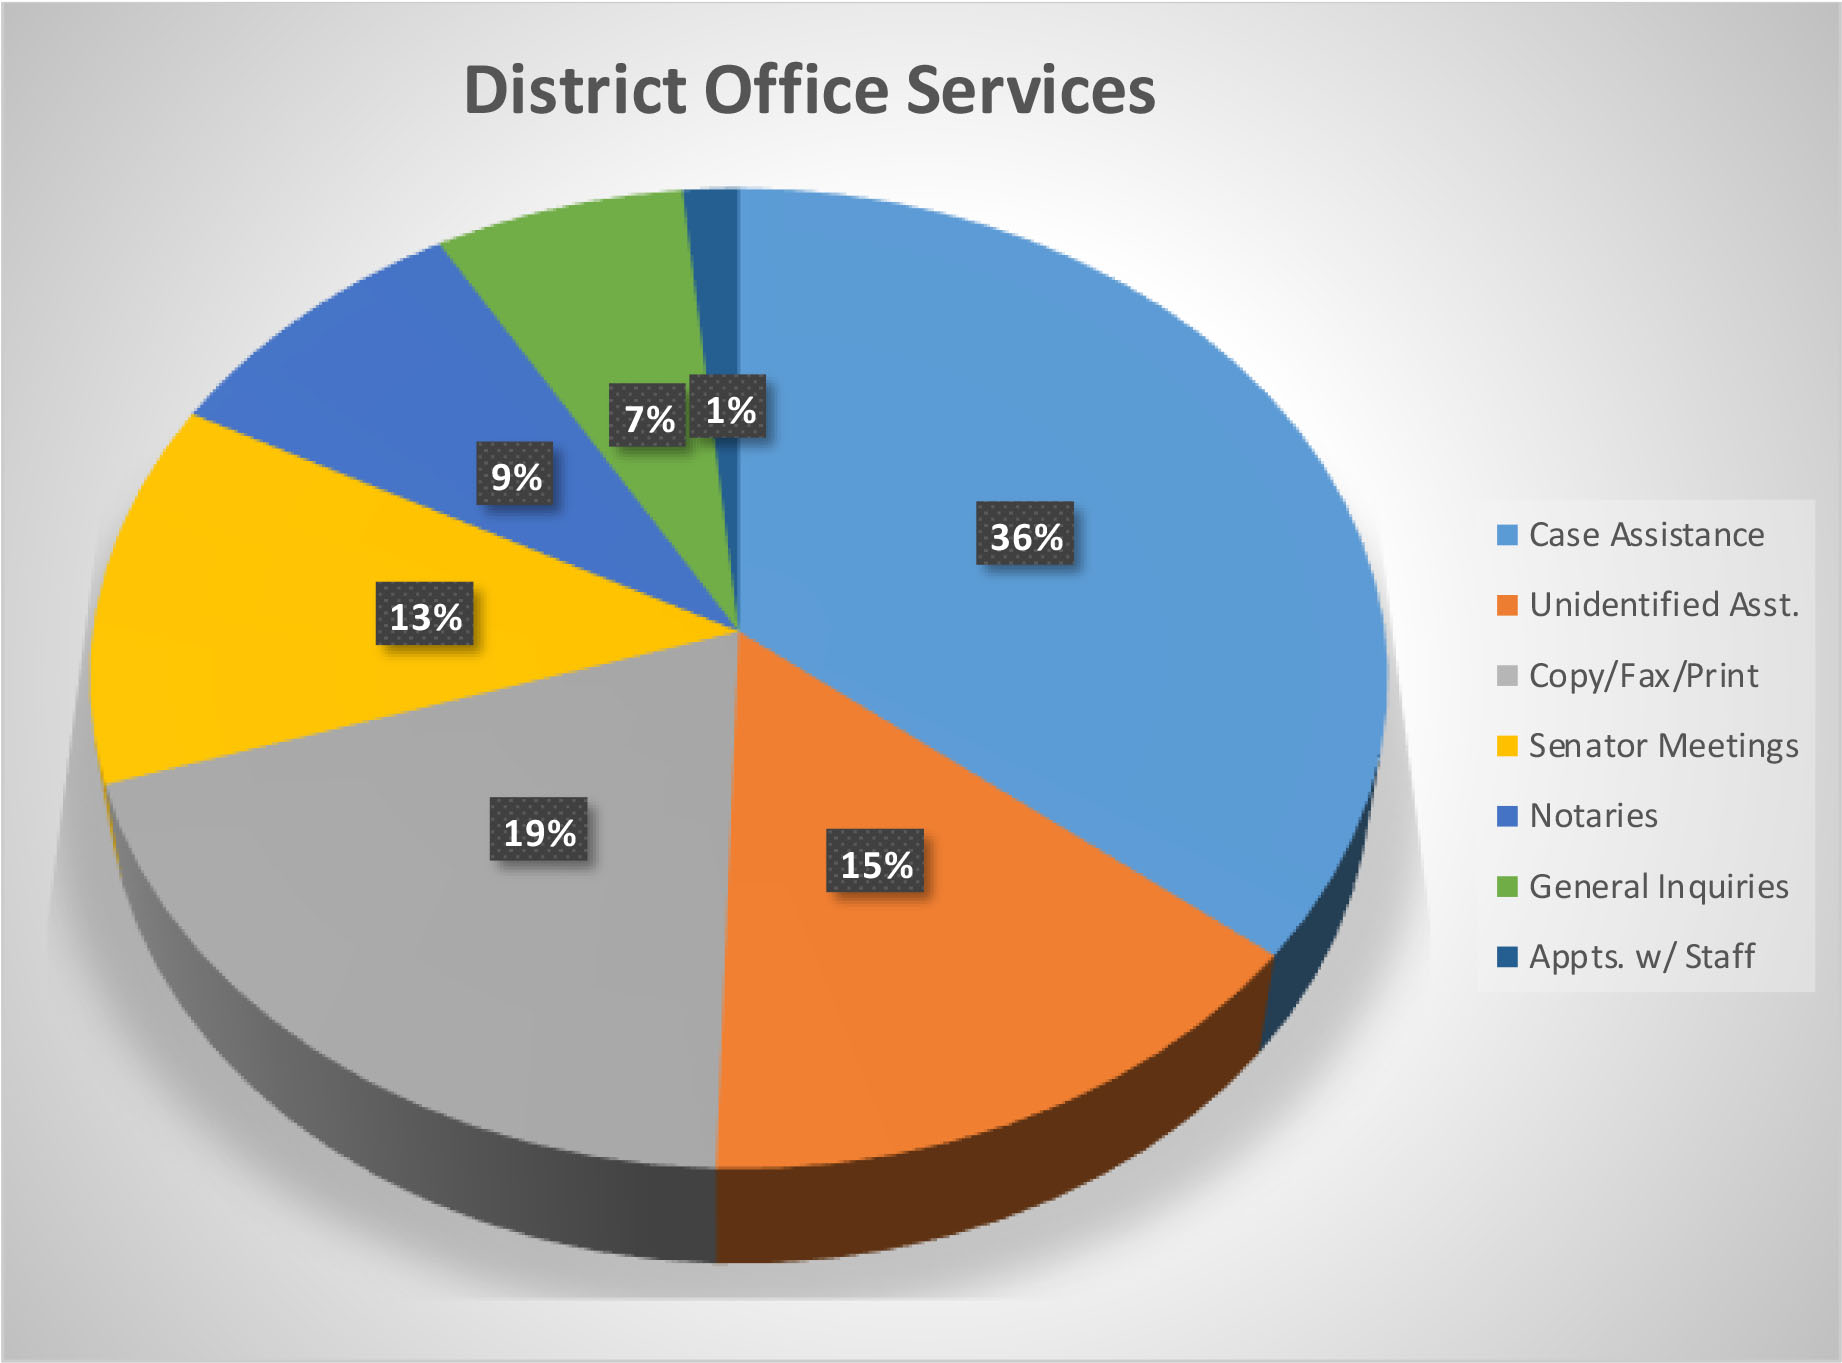 sd14_services_by_percentages.jpg